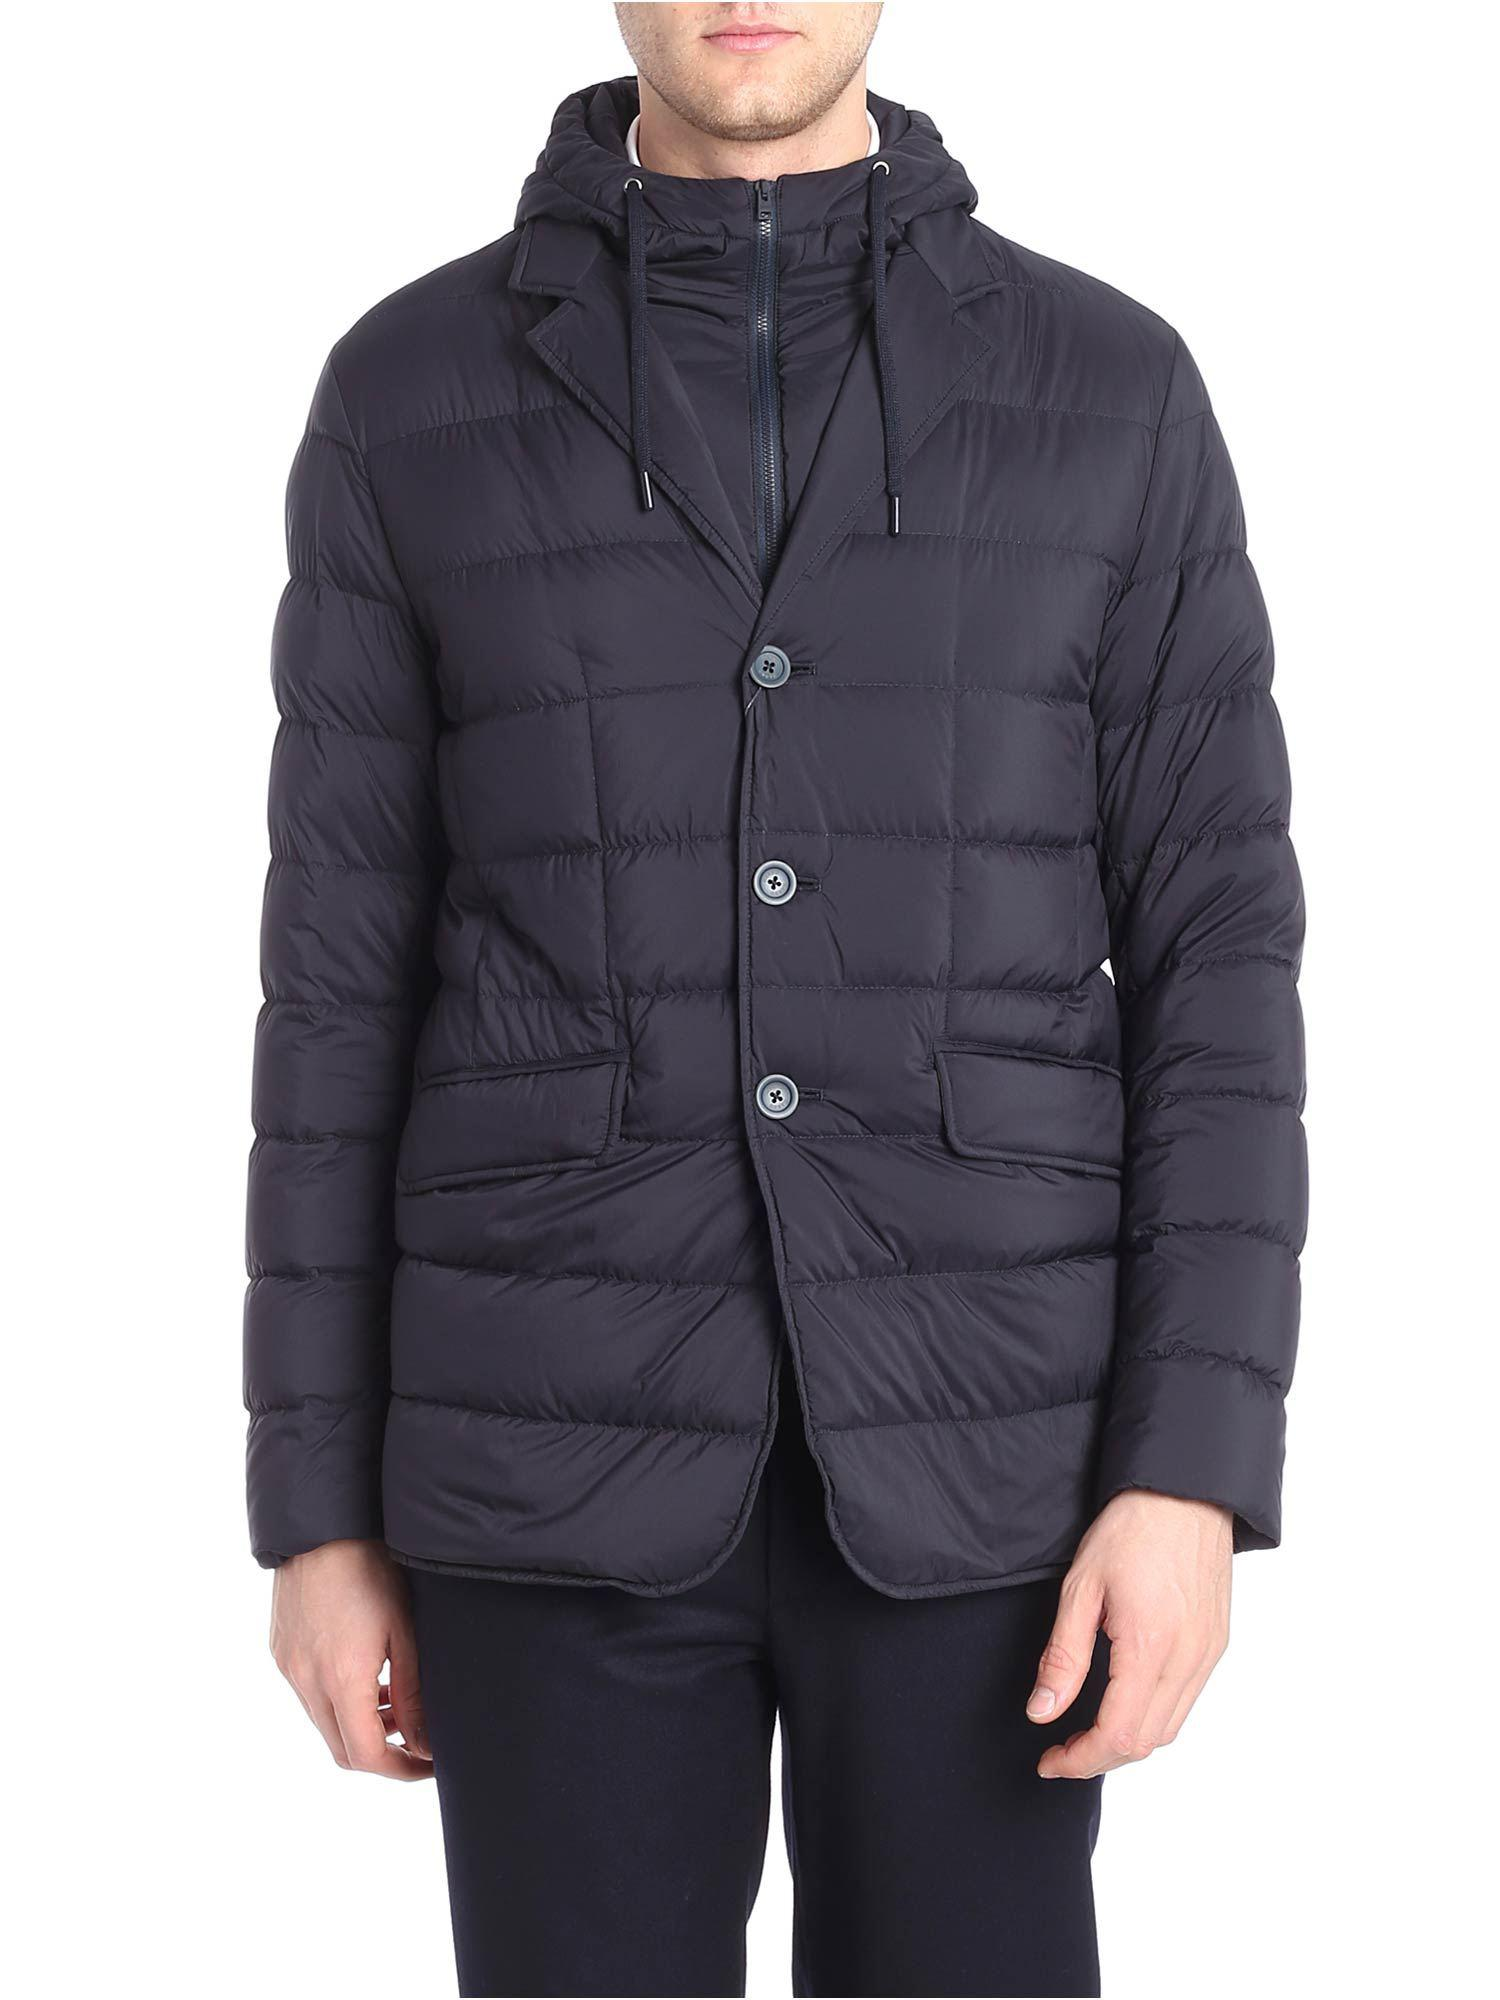 39e84478d07f Herno Blue Down Jacket With Removable Insert in Blue for Men - Lyst